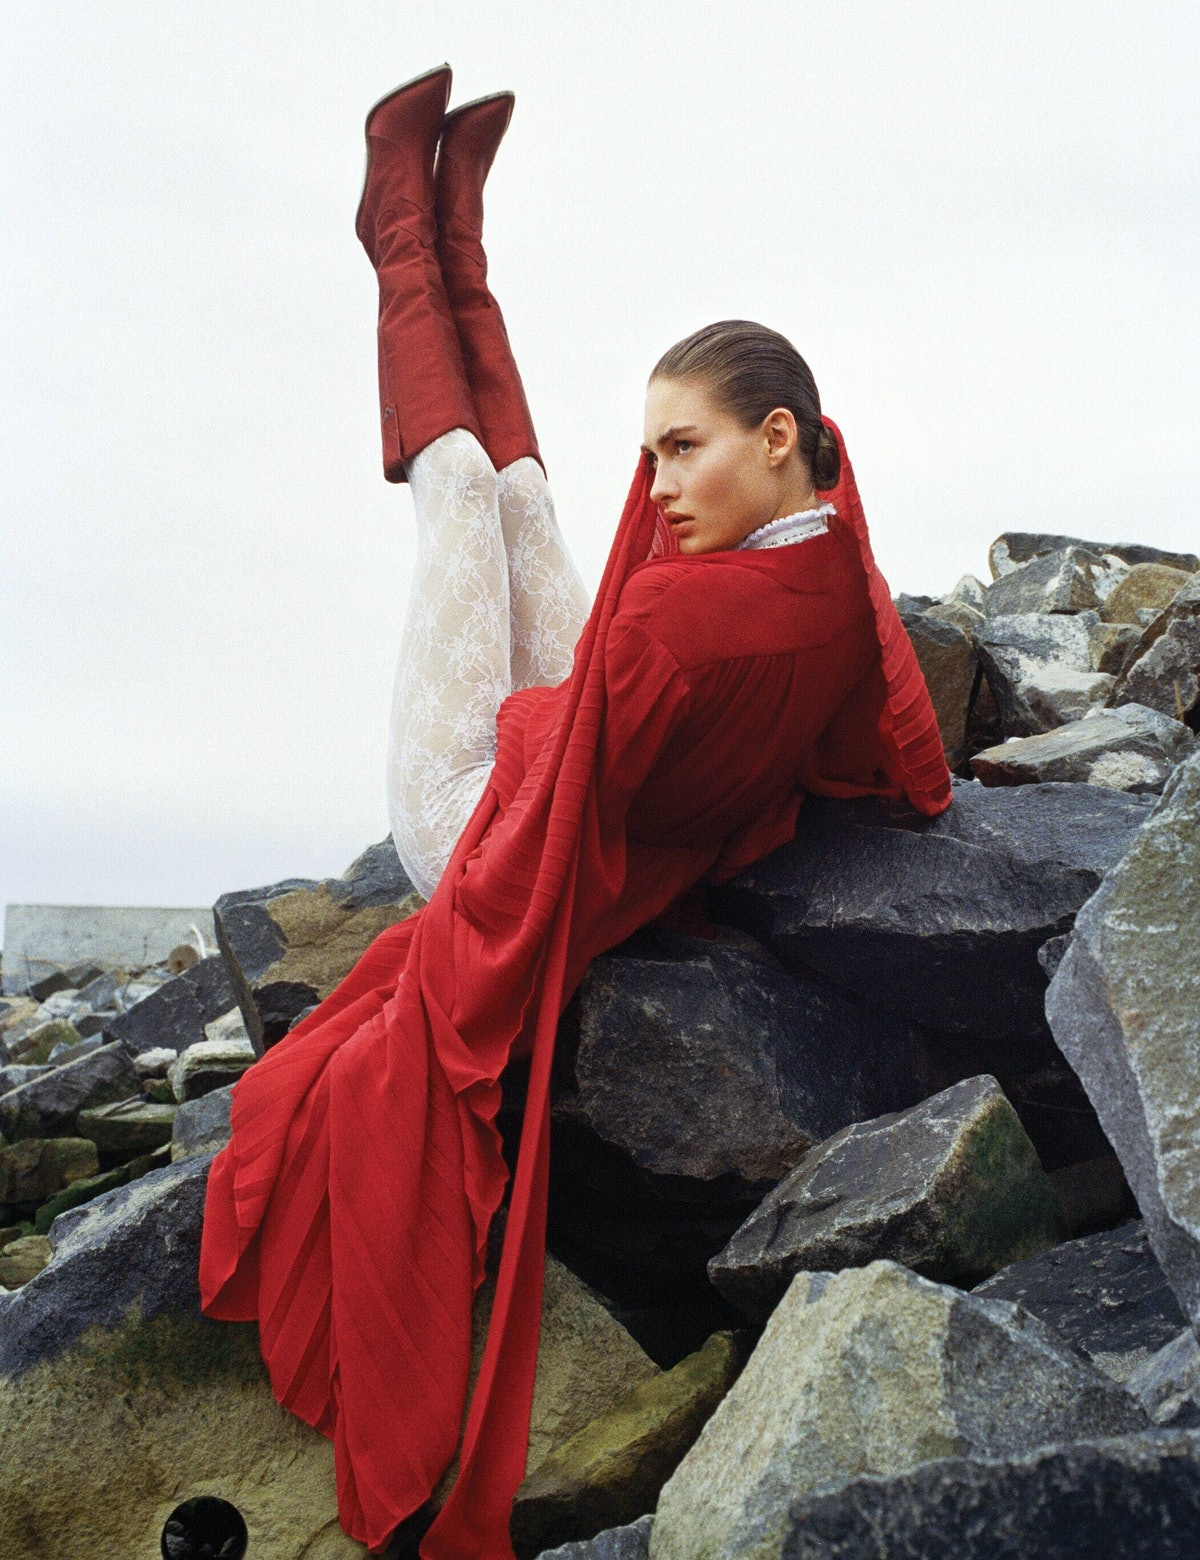 a woman in a red dress and tall brown boots reclines on a rocky outcropping